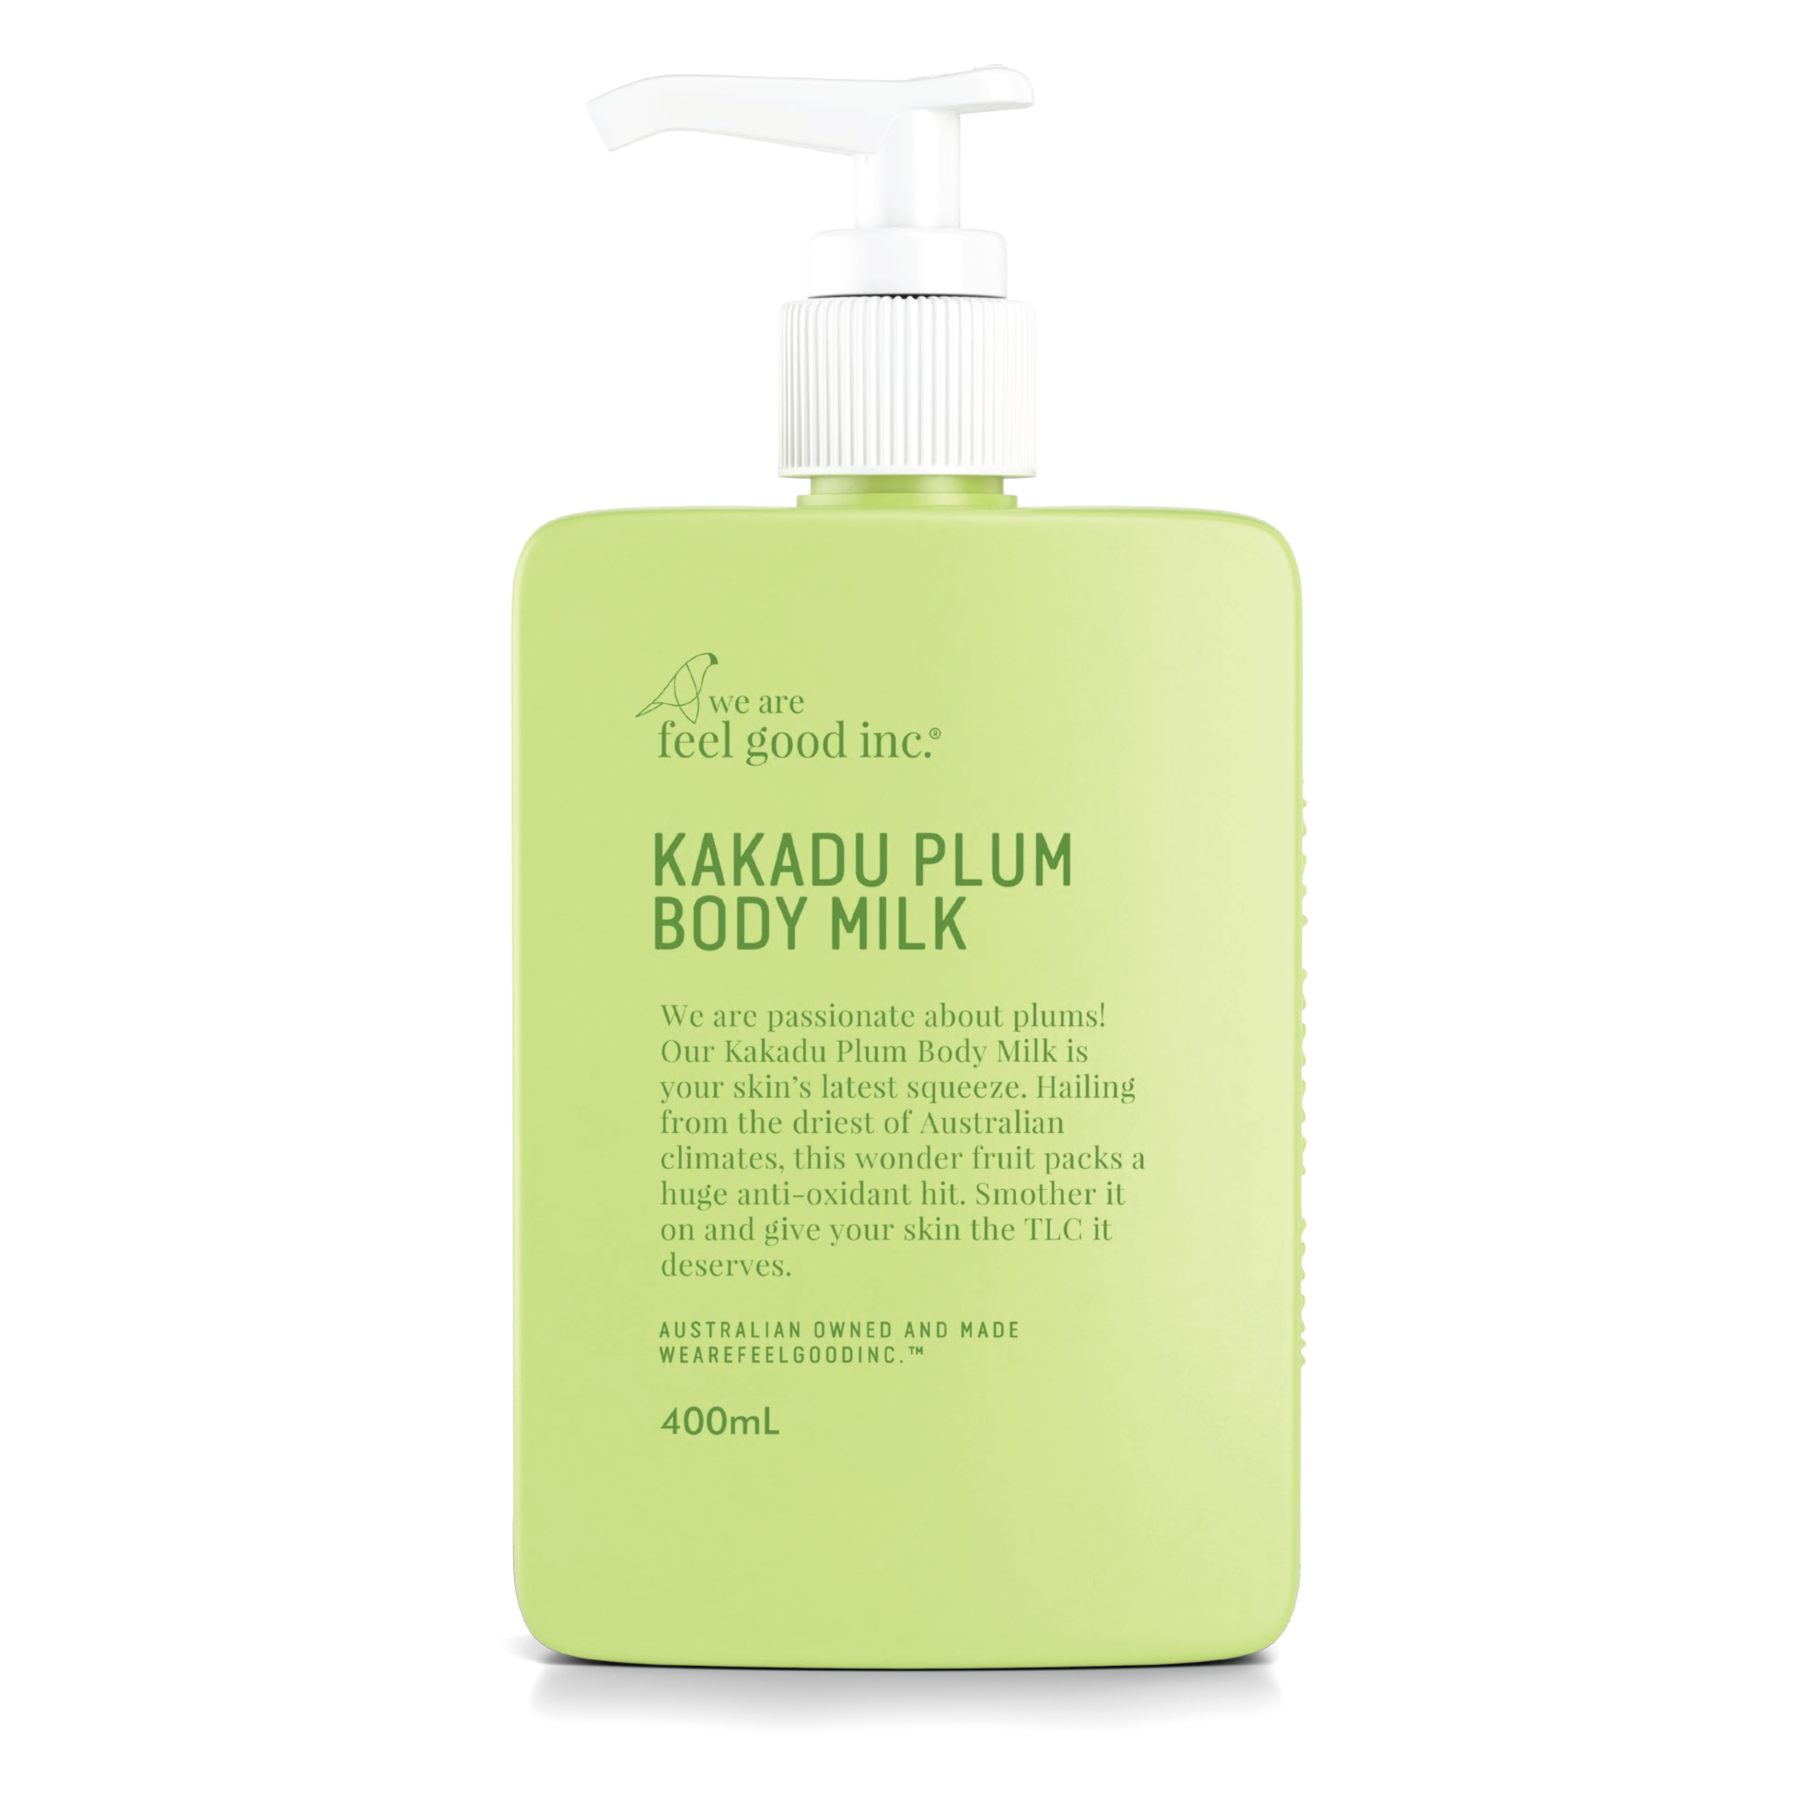 We Are Feel Good Inc Kakadu Plum Body Milk 400ml